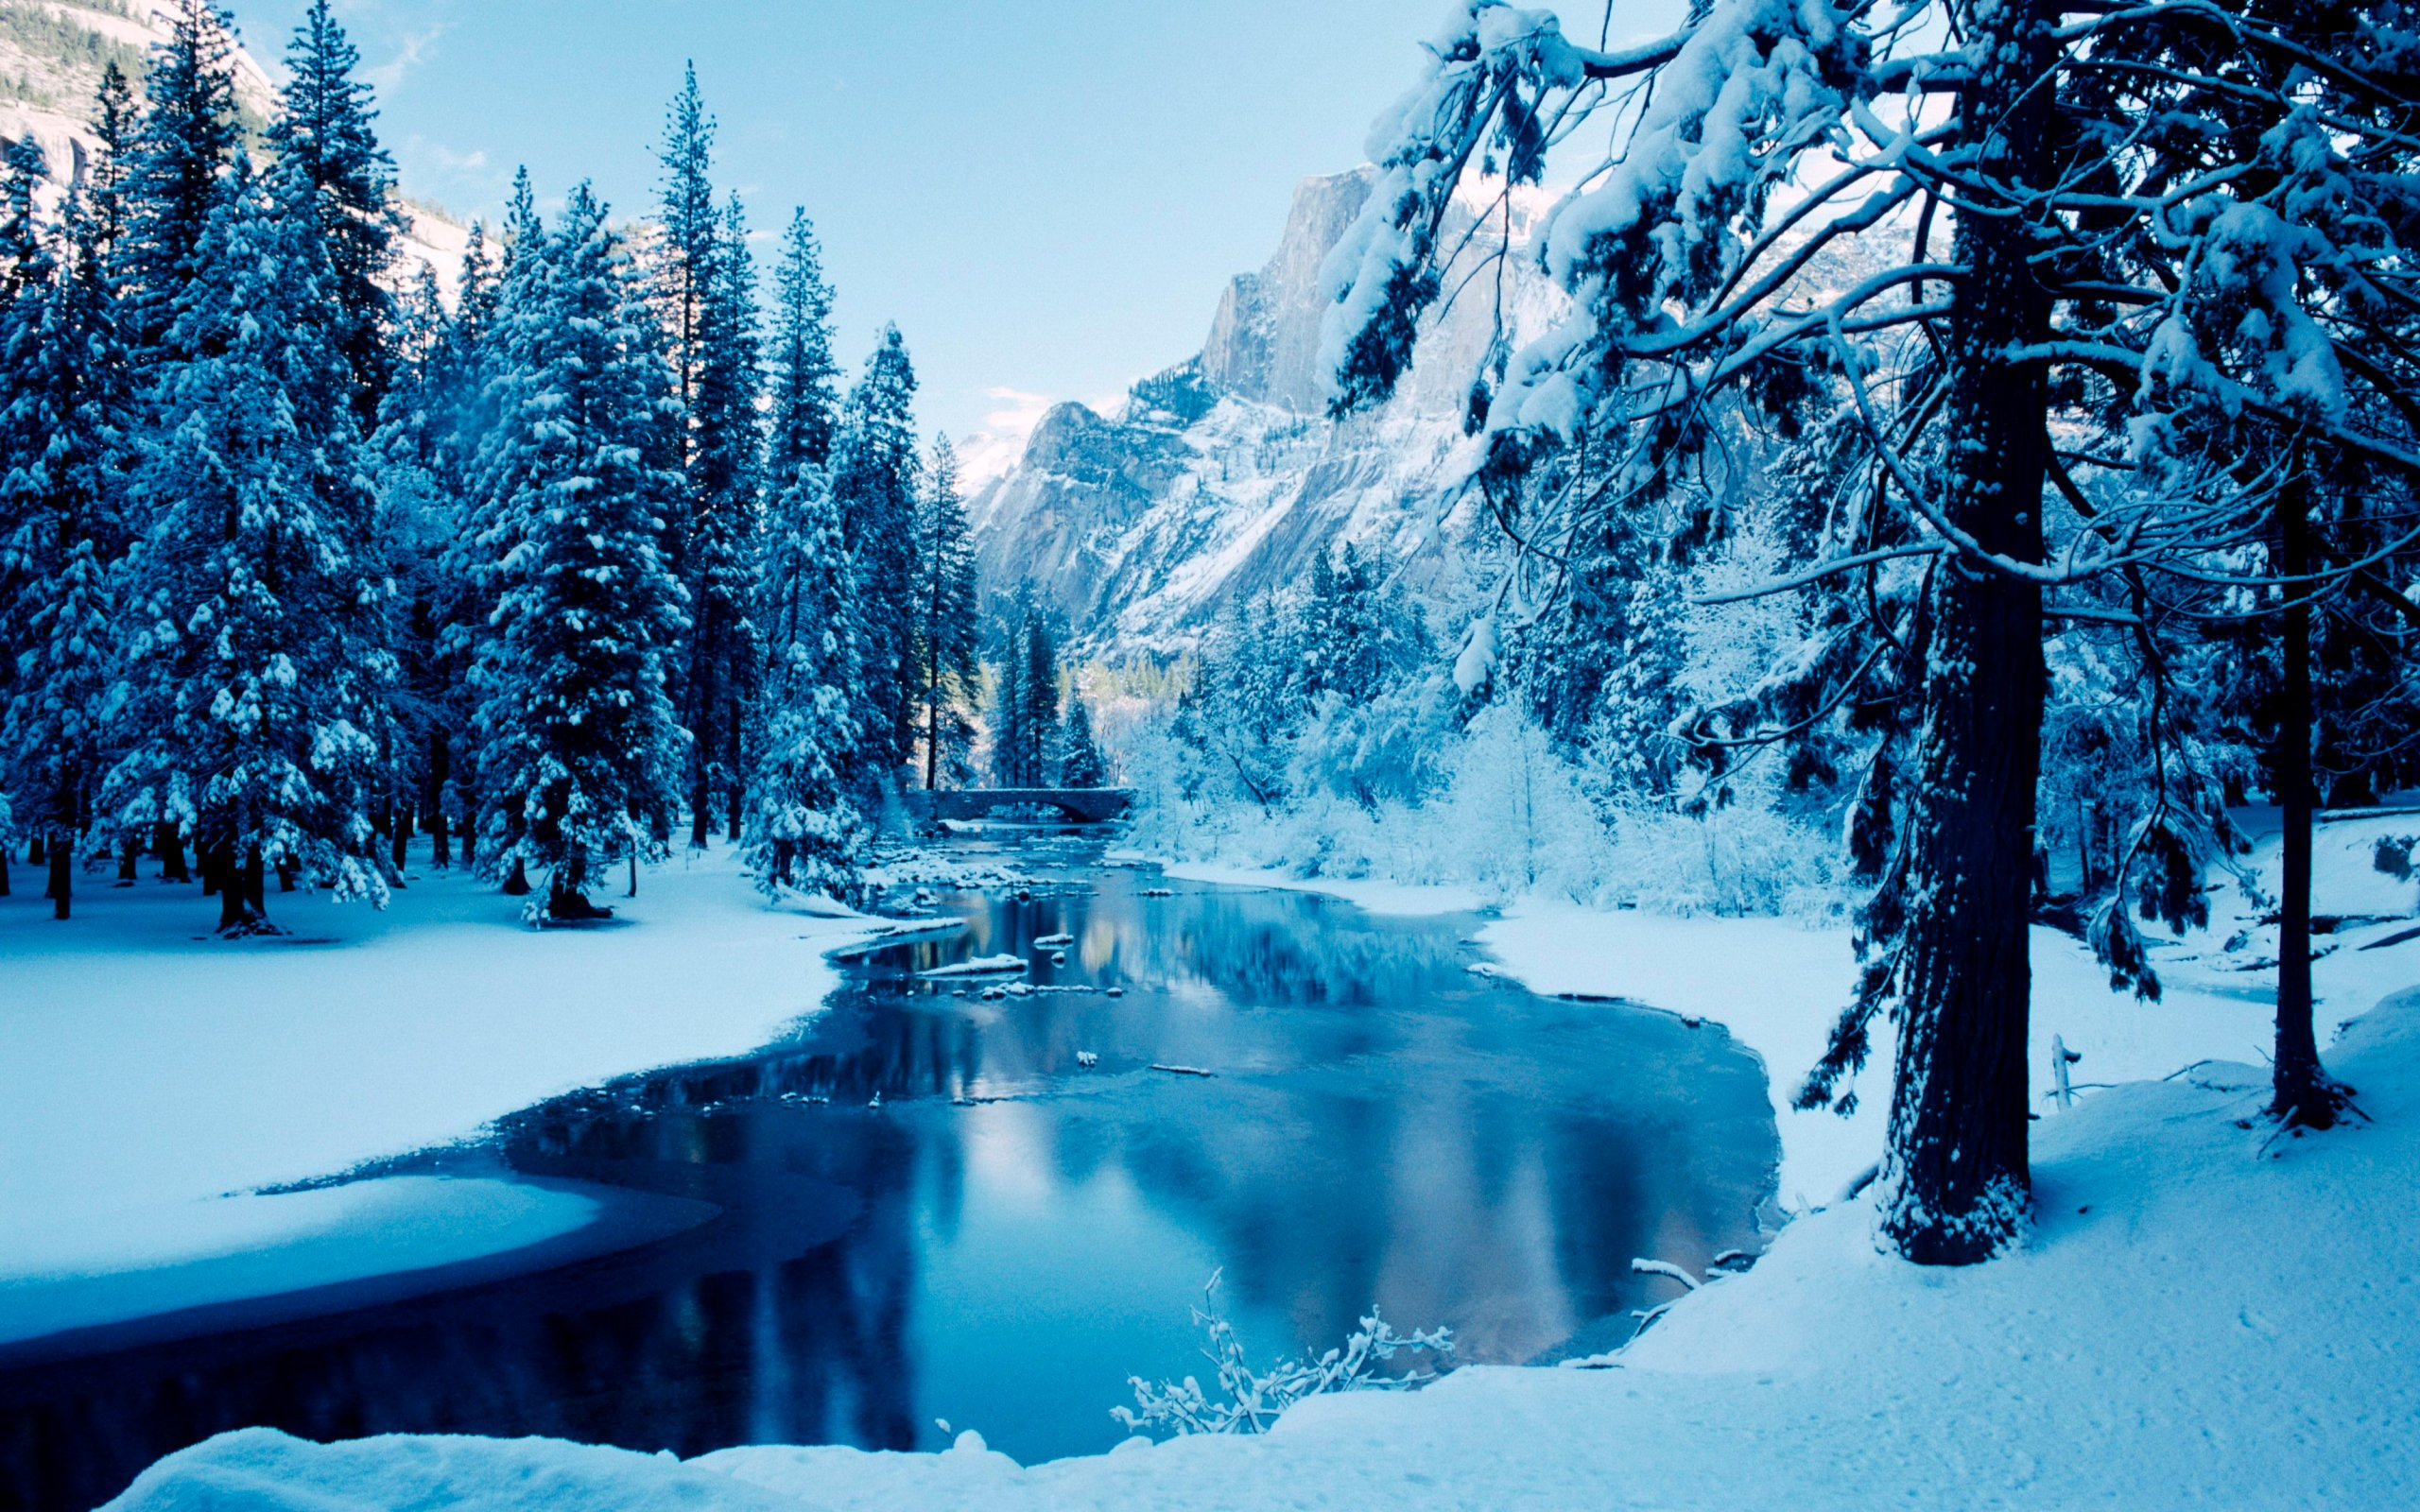 Winter wallpaper hd android